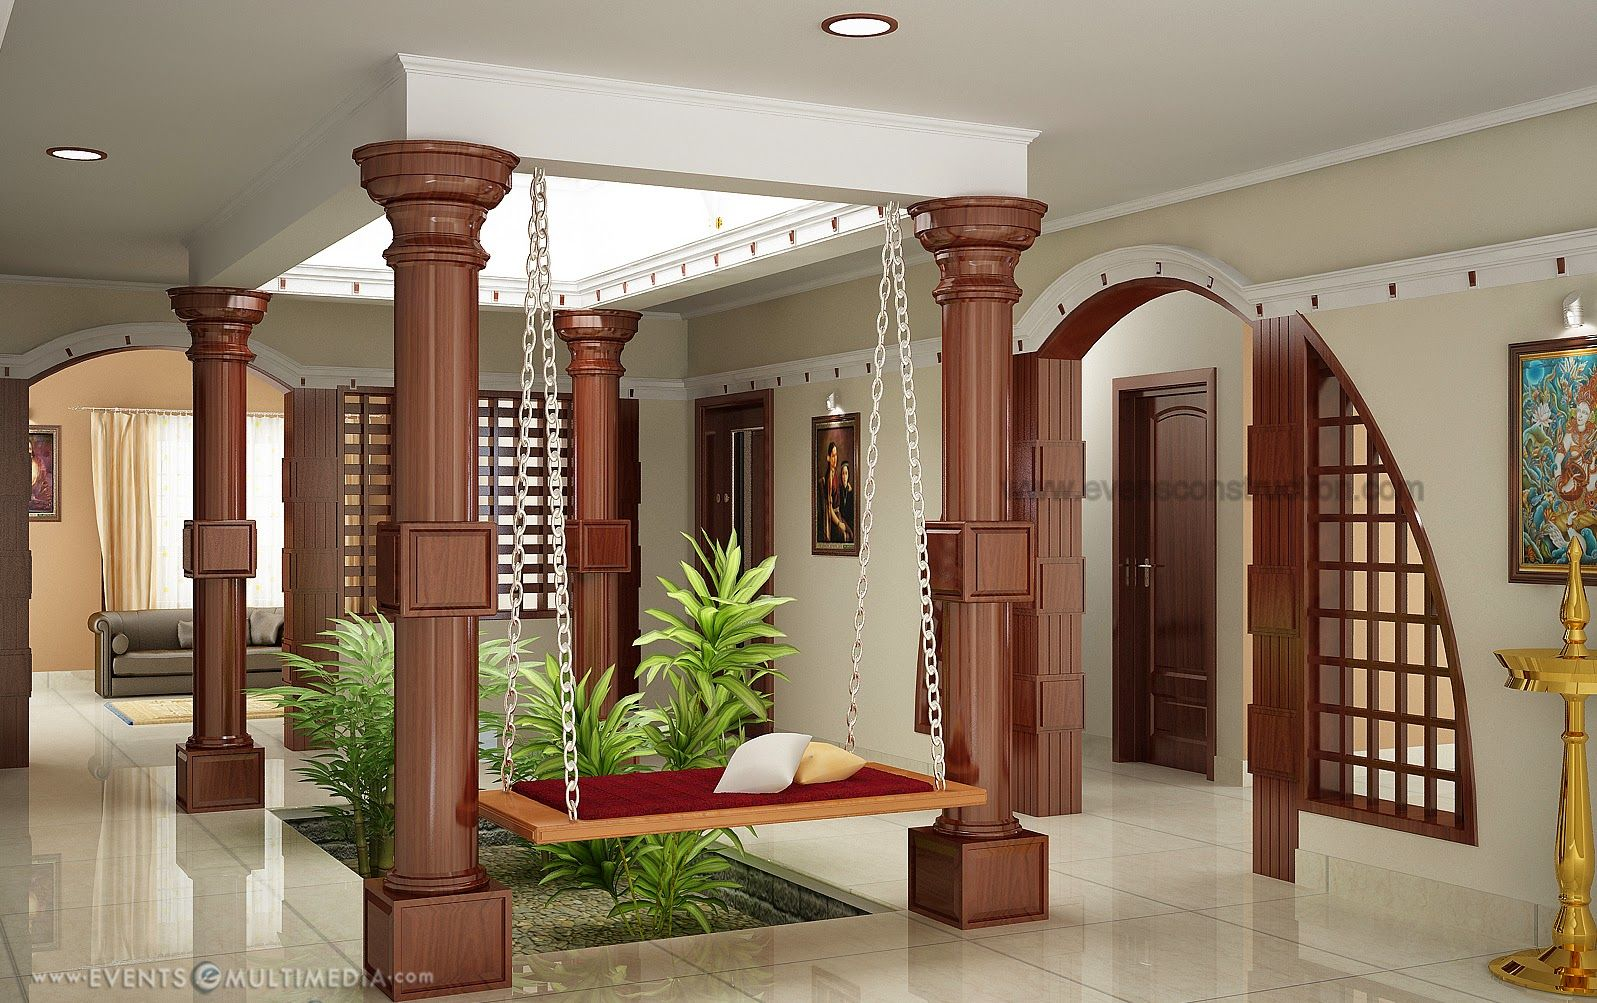 Interior design kerala google search inside and - Interior design ideas for indian homes ...